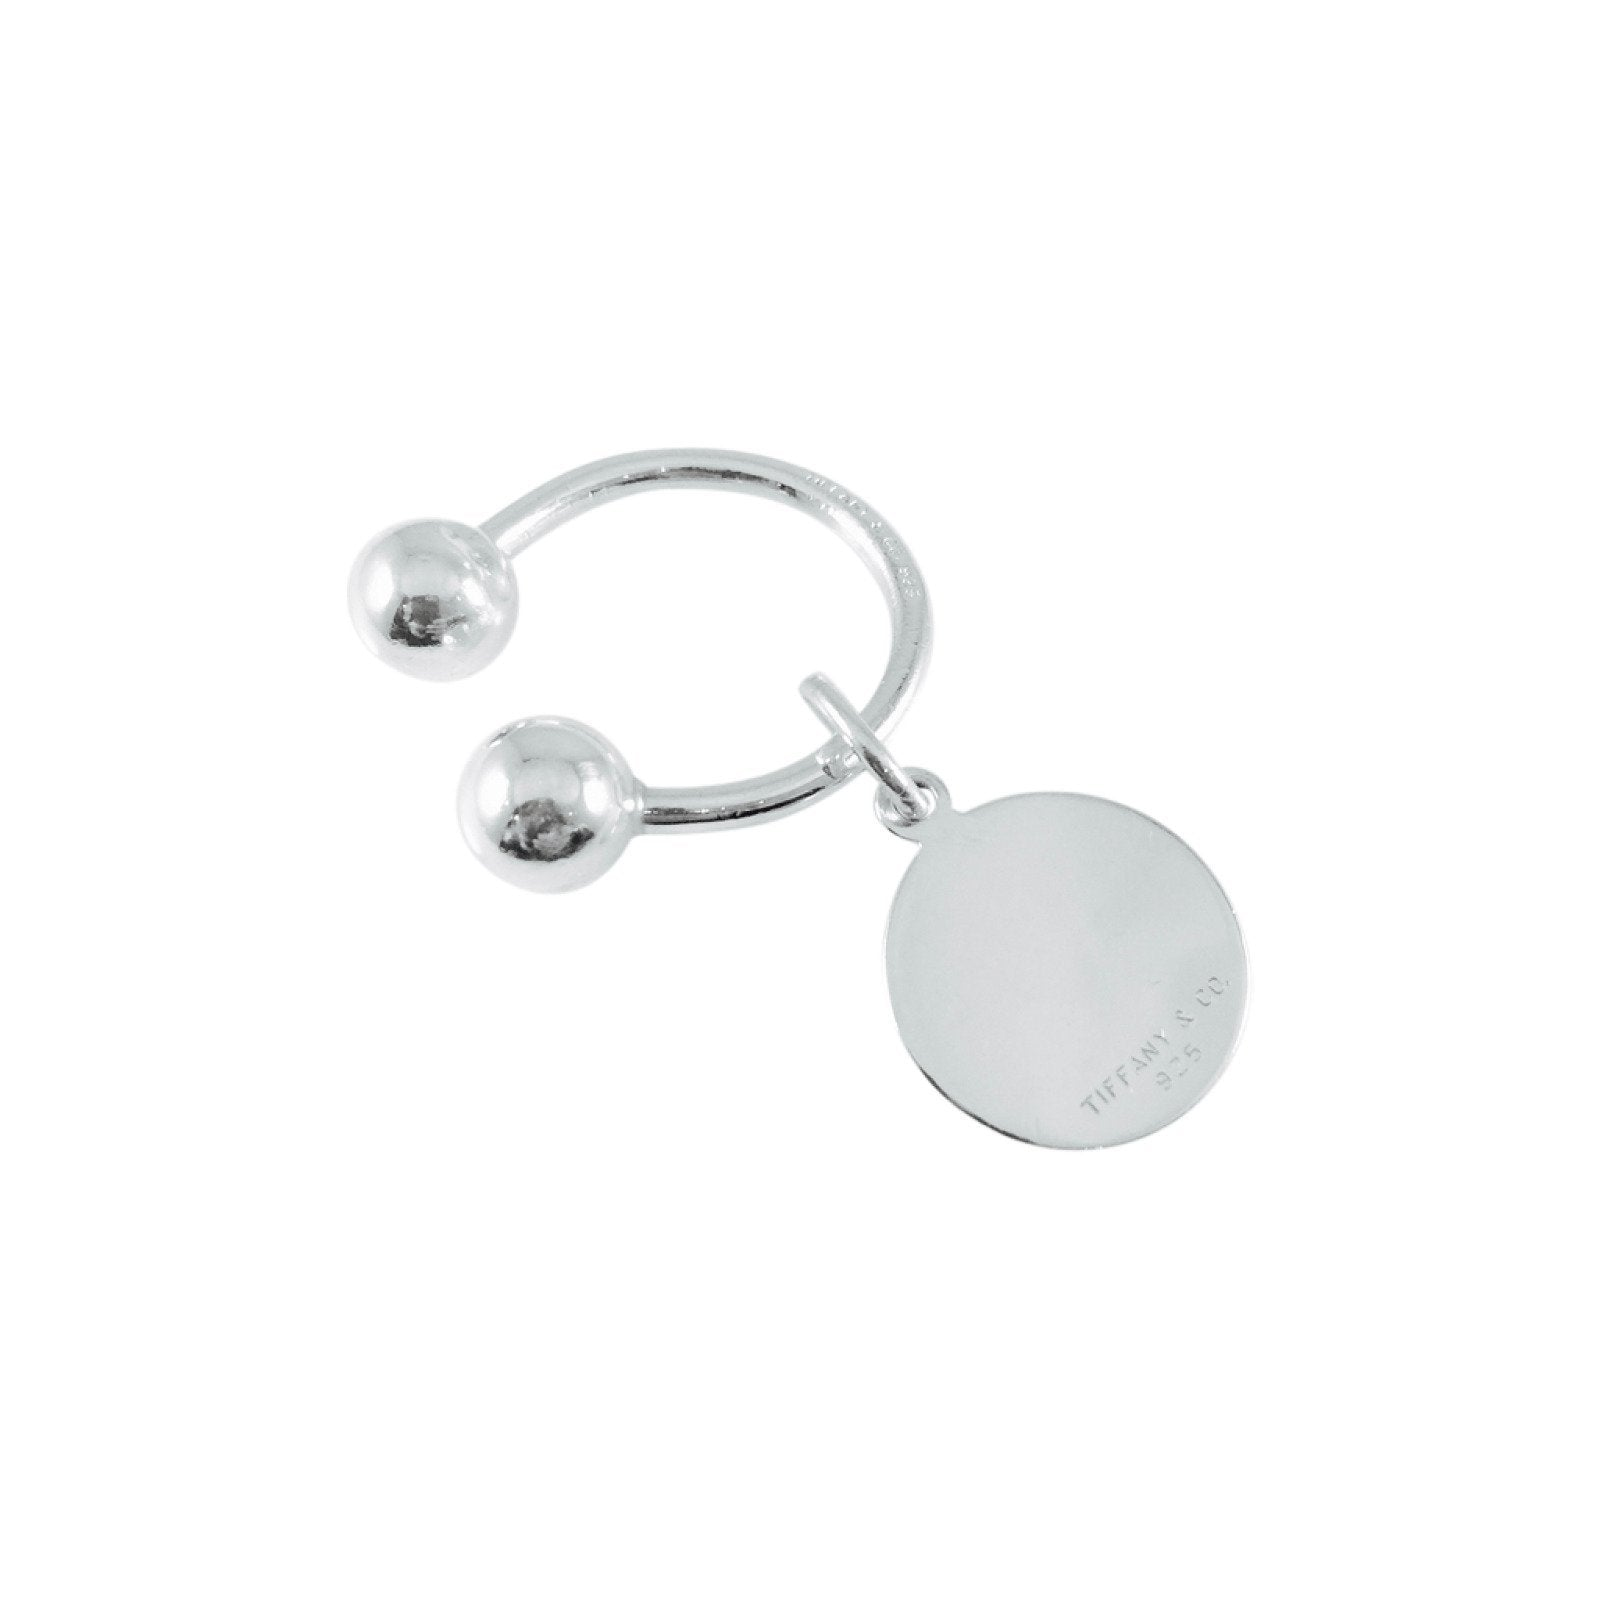 be270047f Tiffany & Co. Round Tag Key Ring in Sterling Silver Accessories Tiffany & Co .